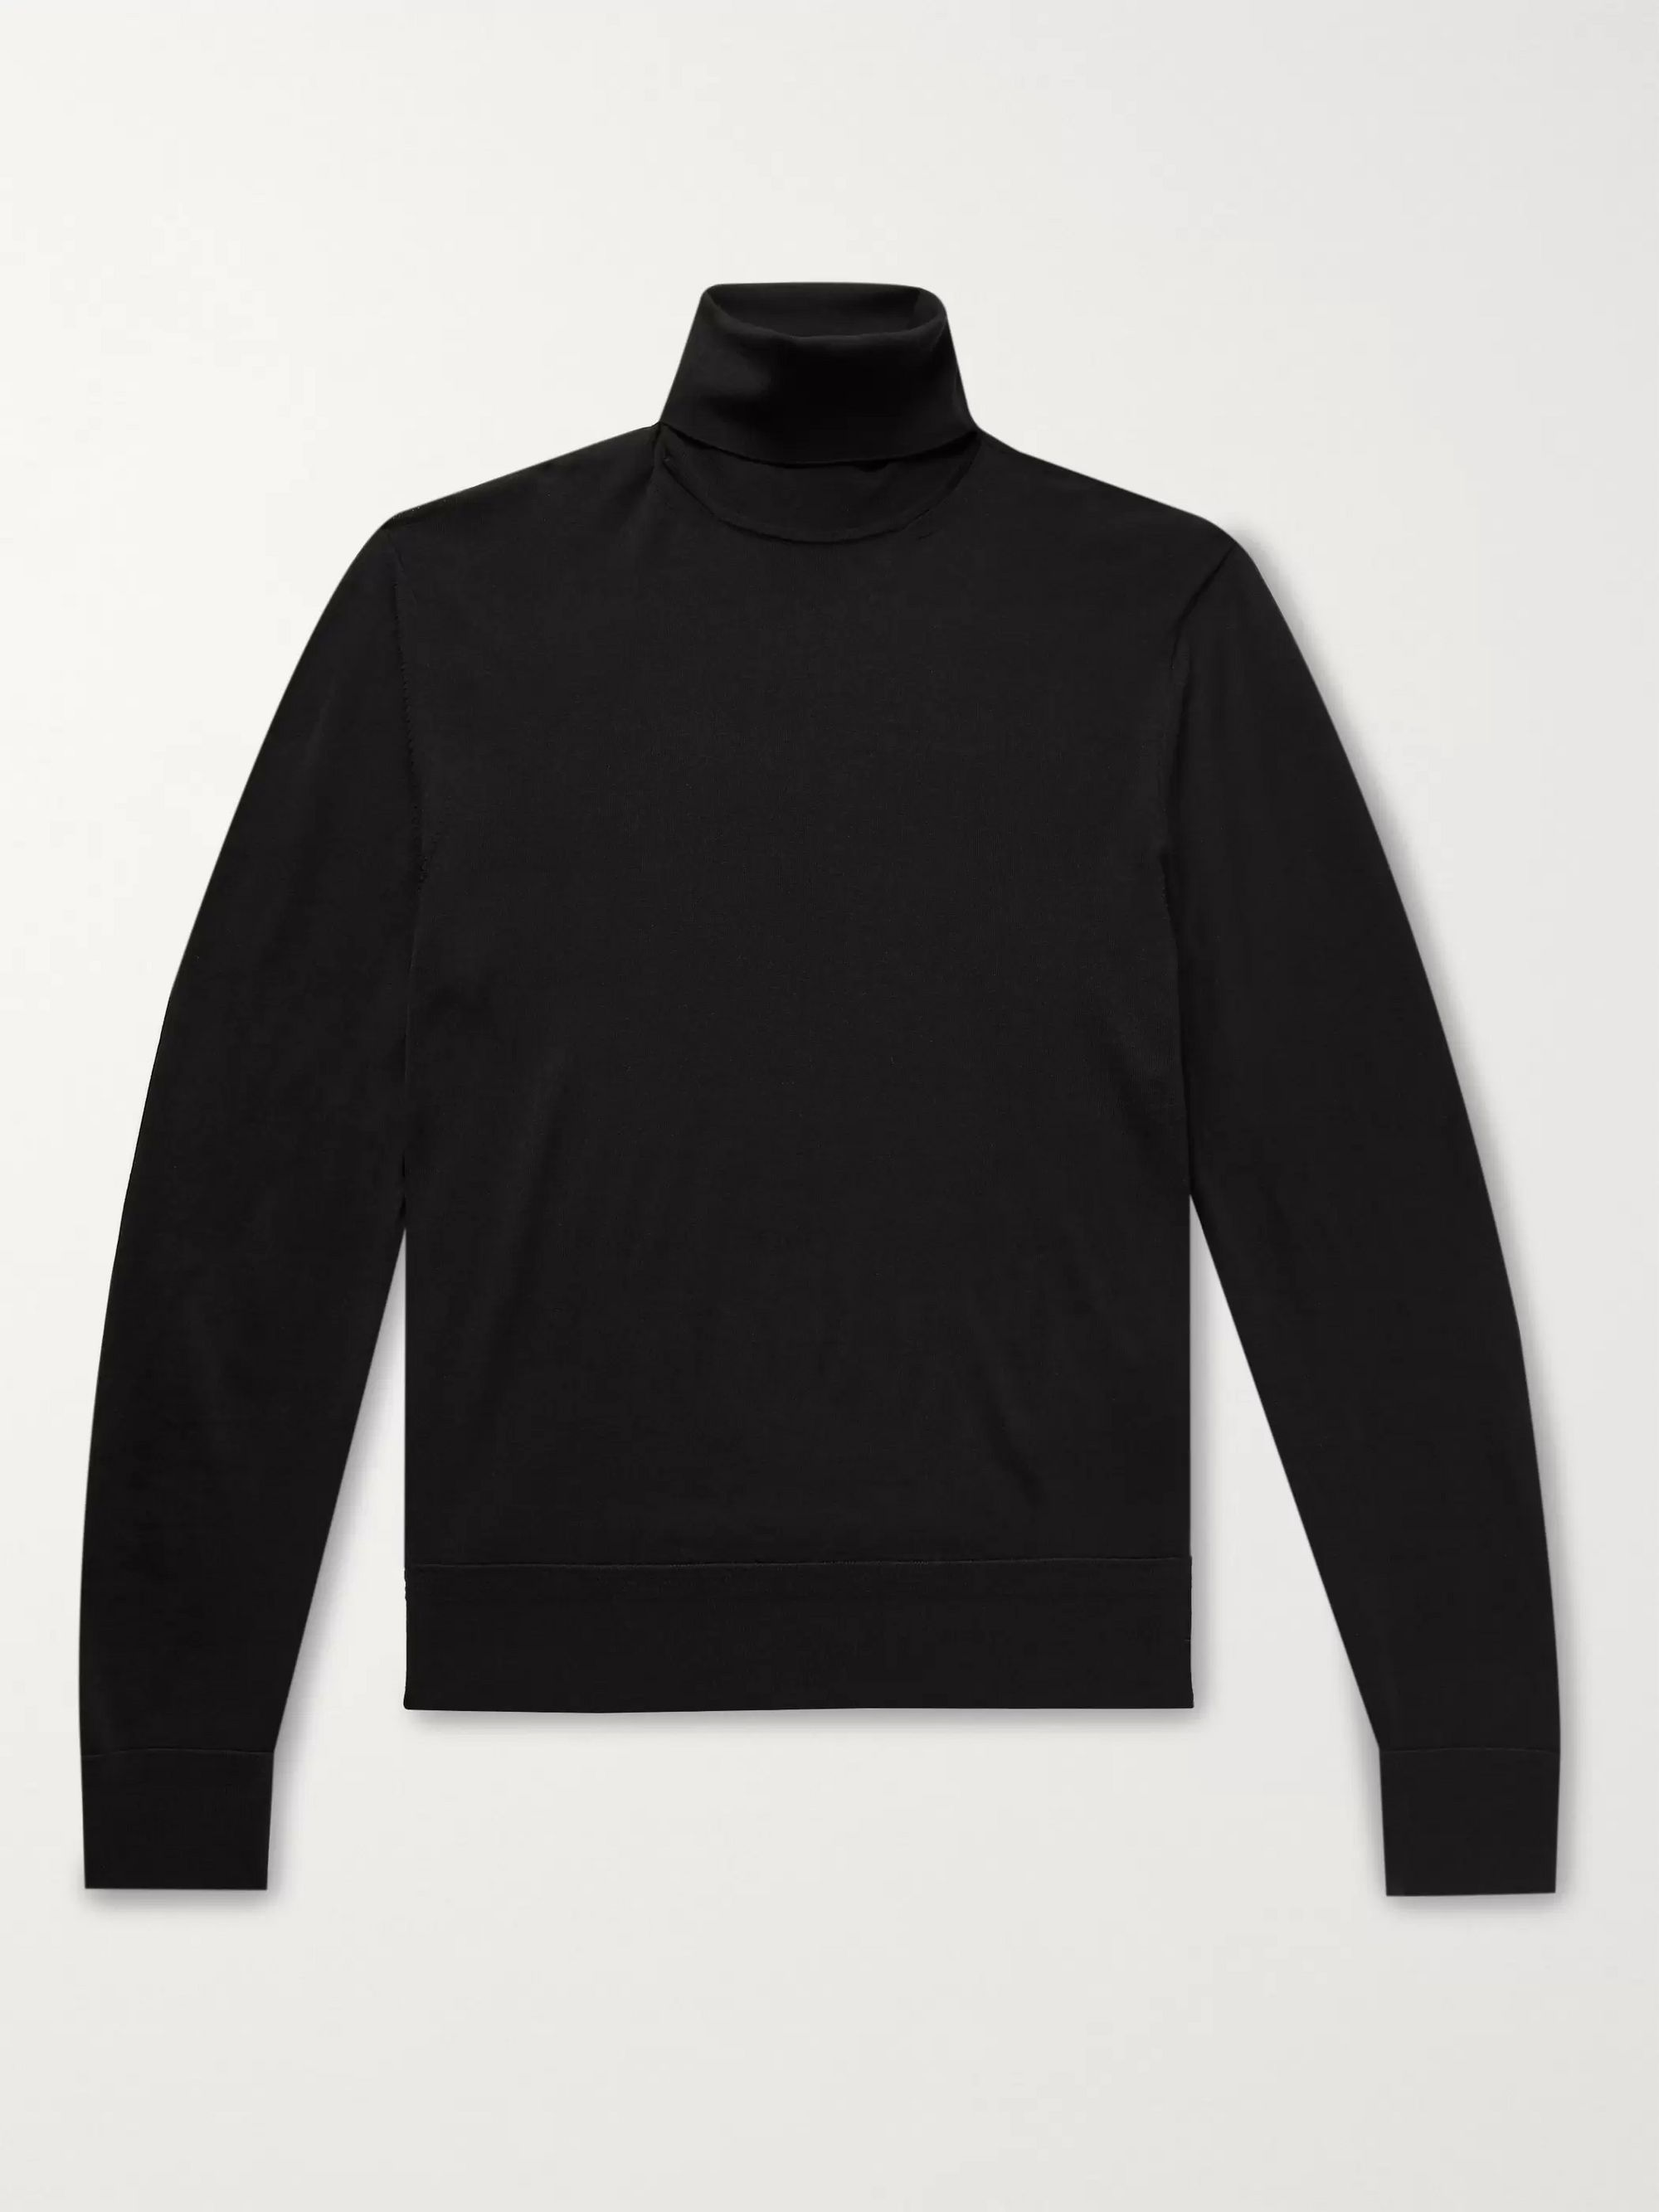 TOM FORD Wool Rollneck Sweater